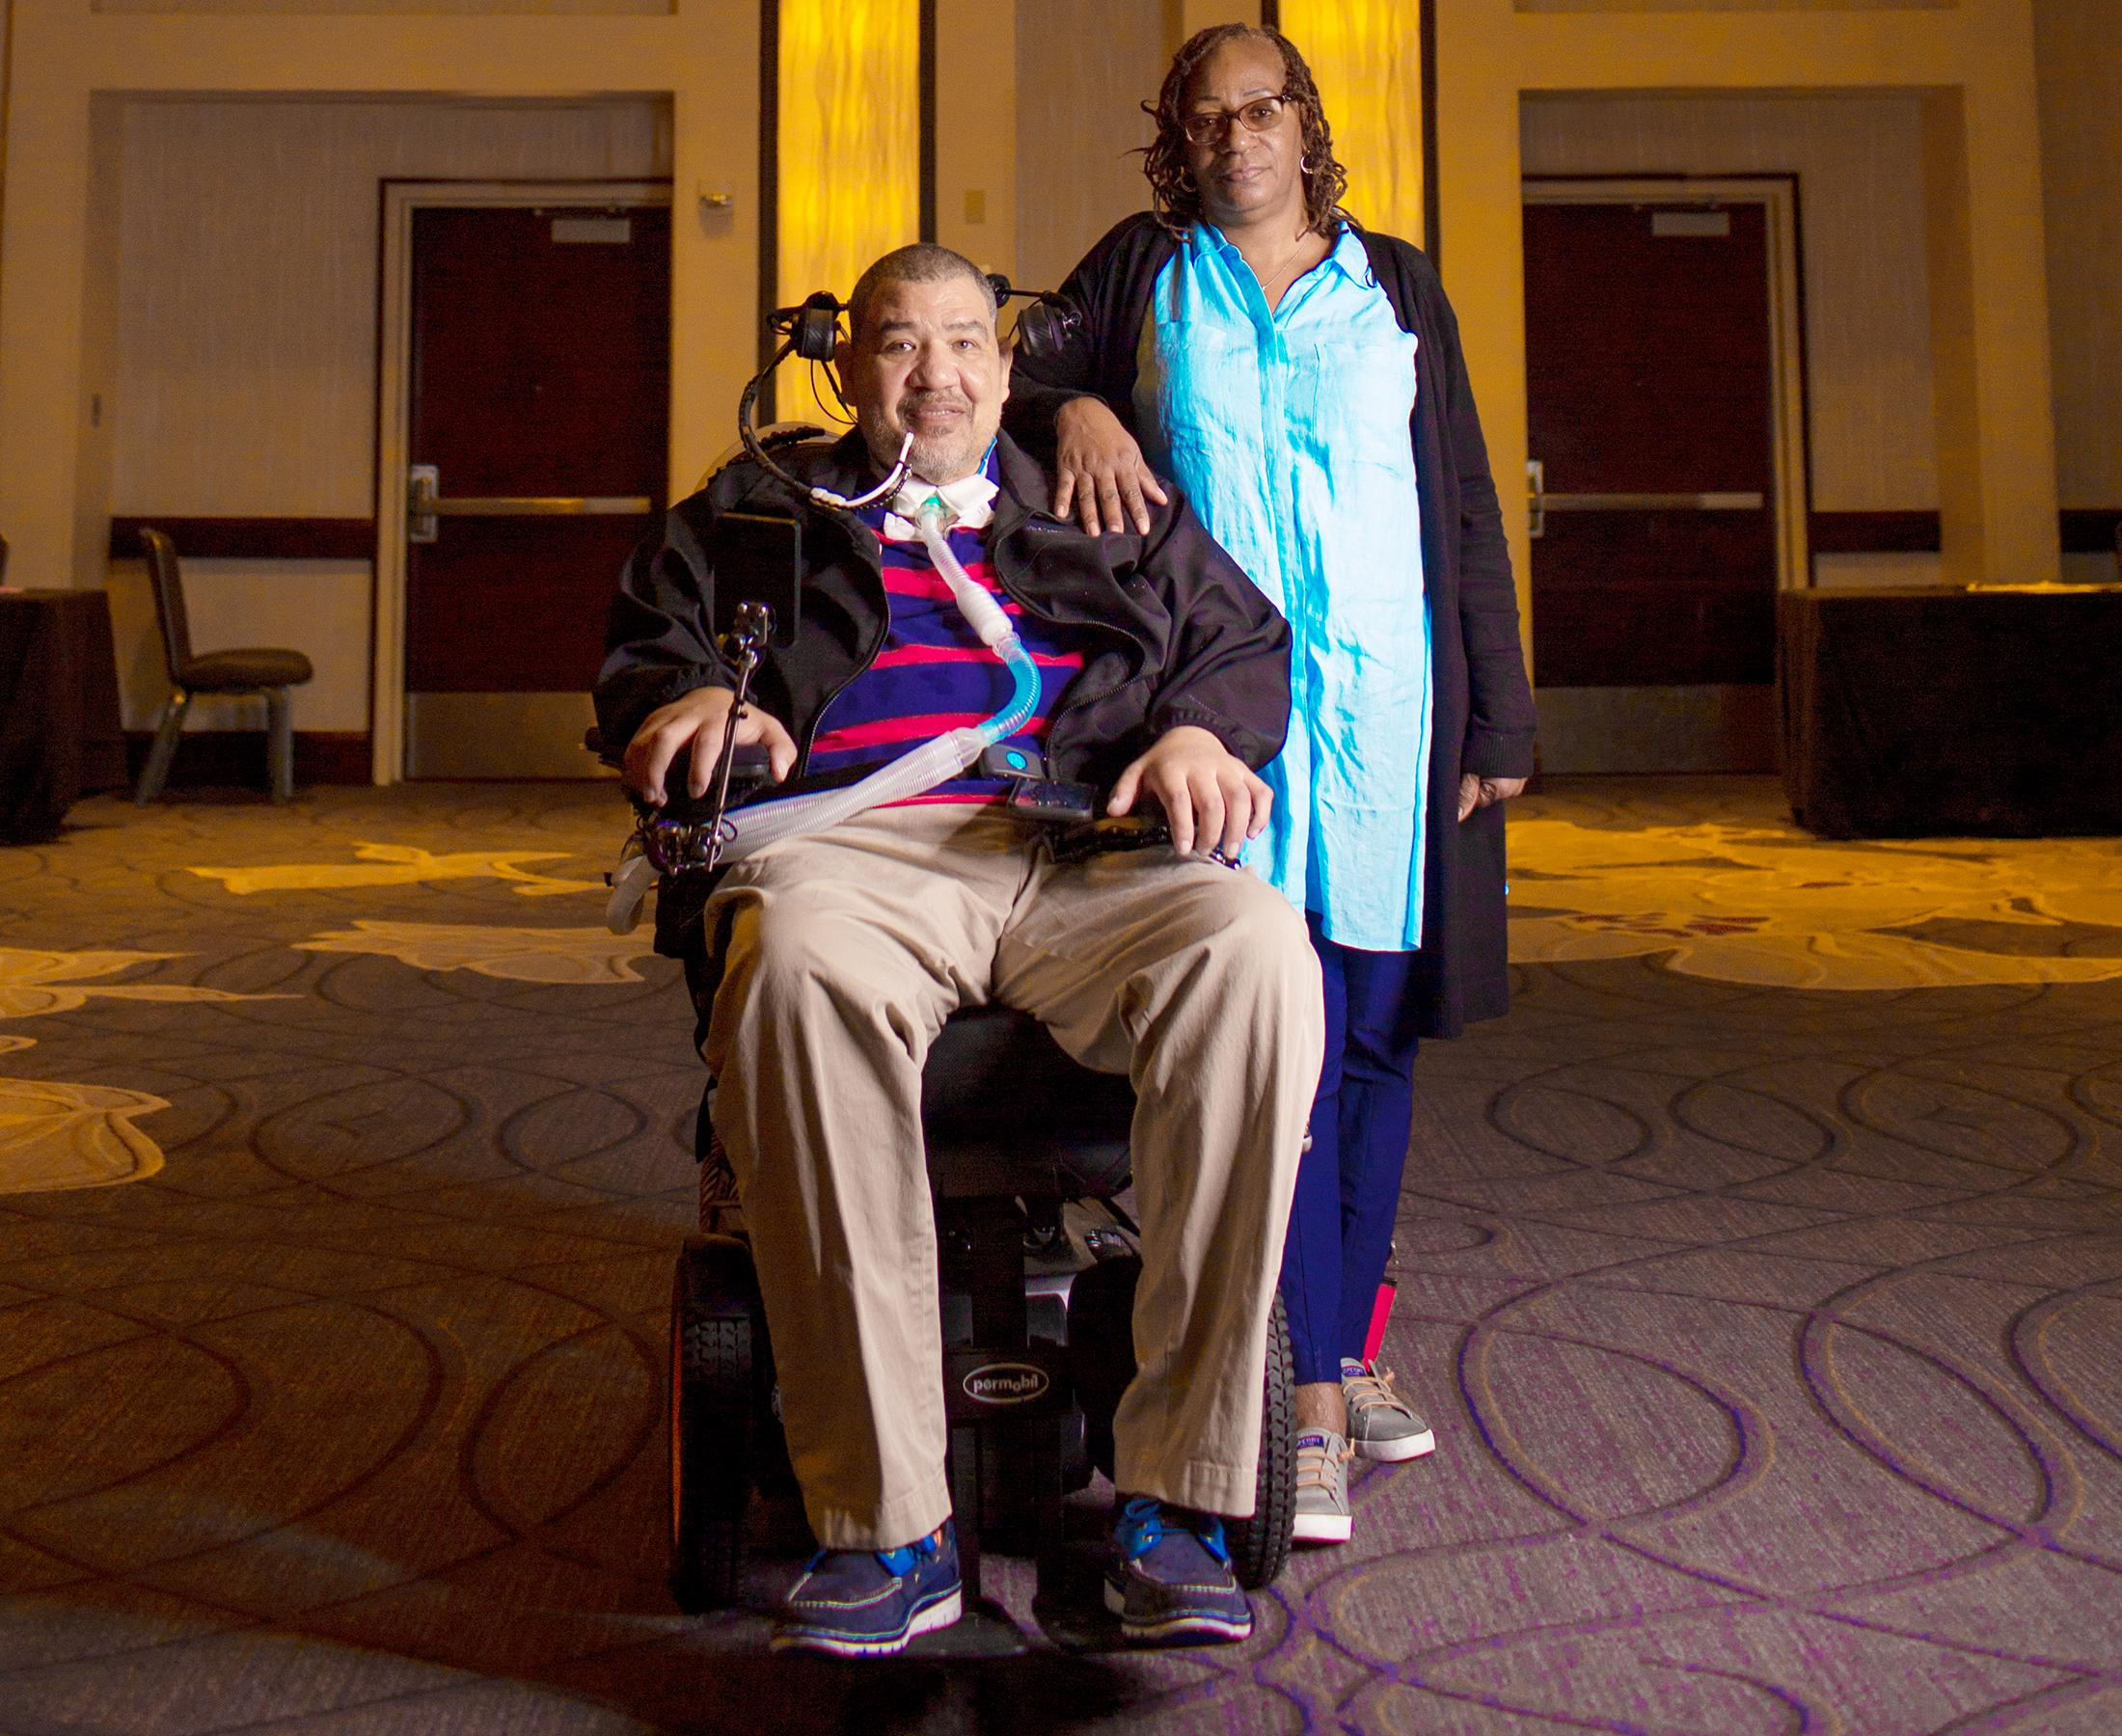 Person with ALS and his wife